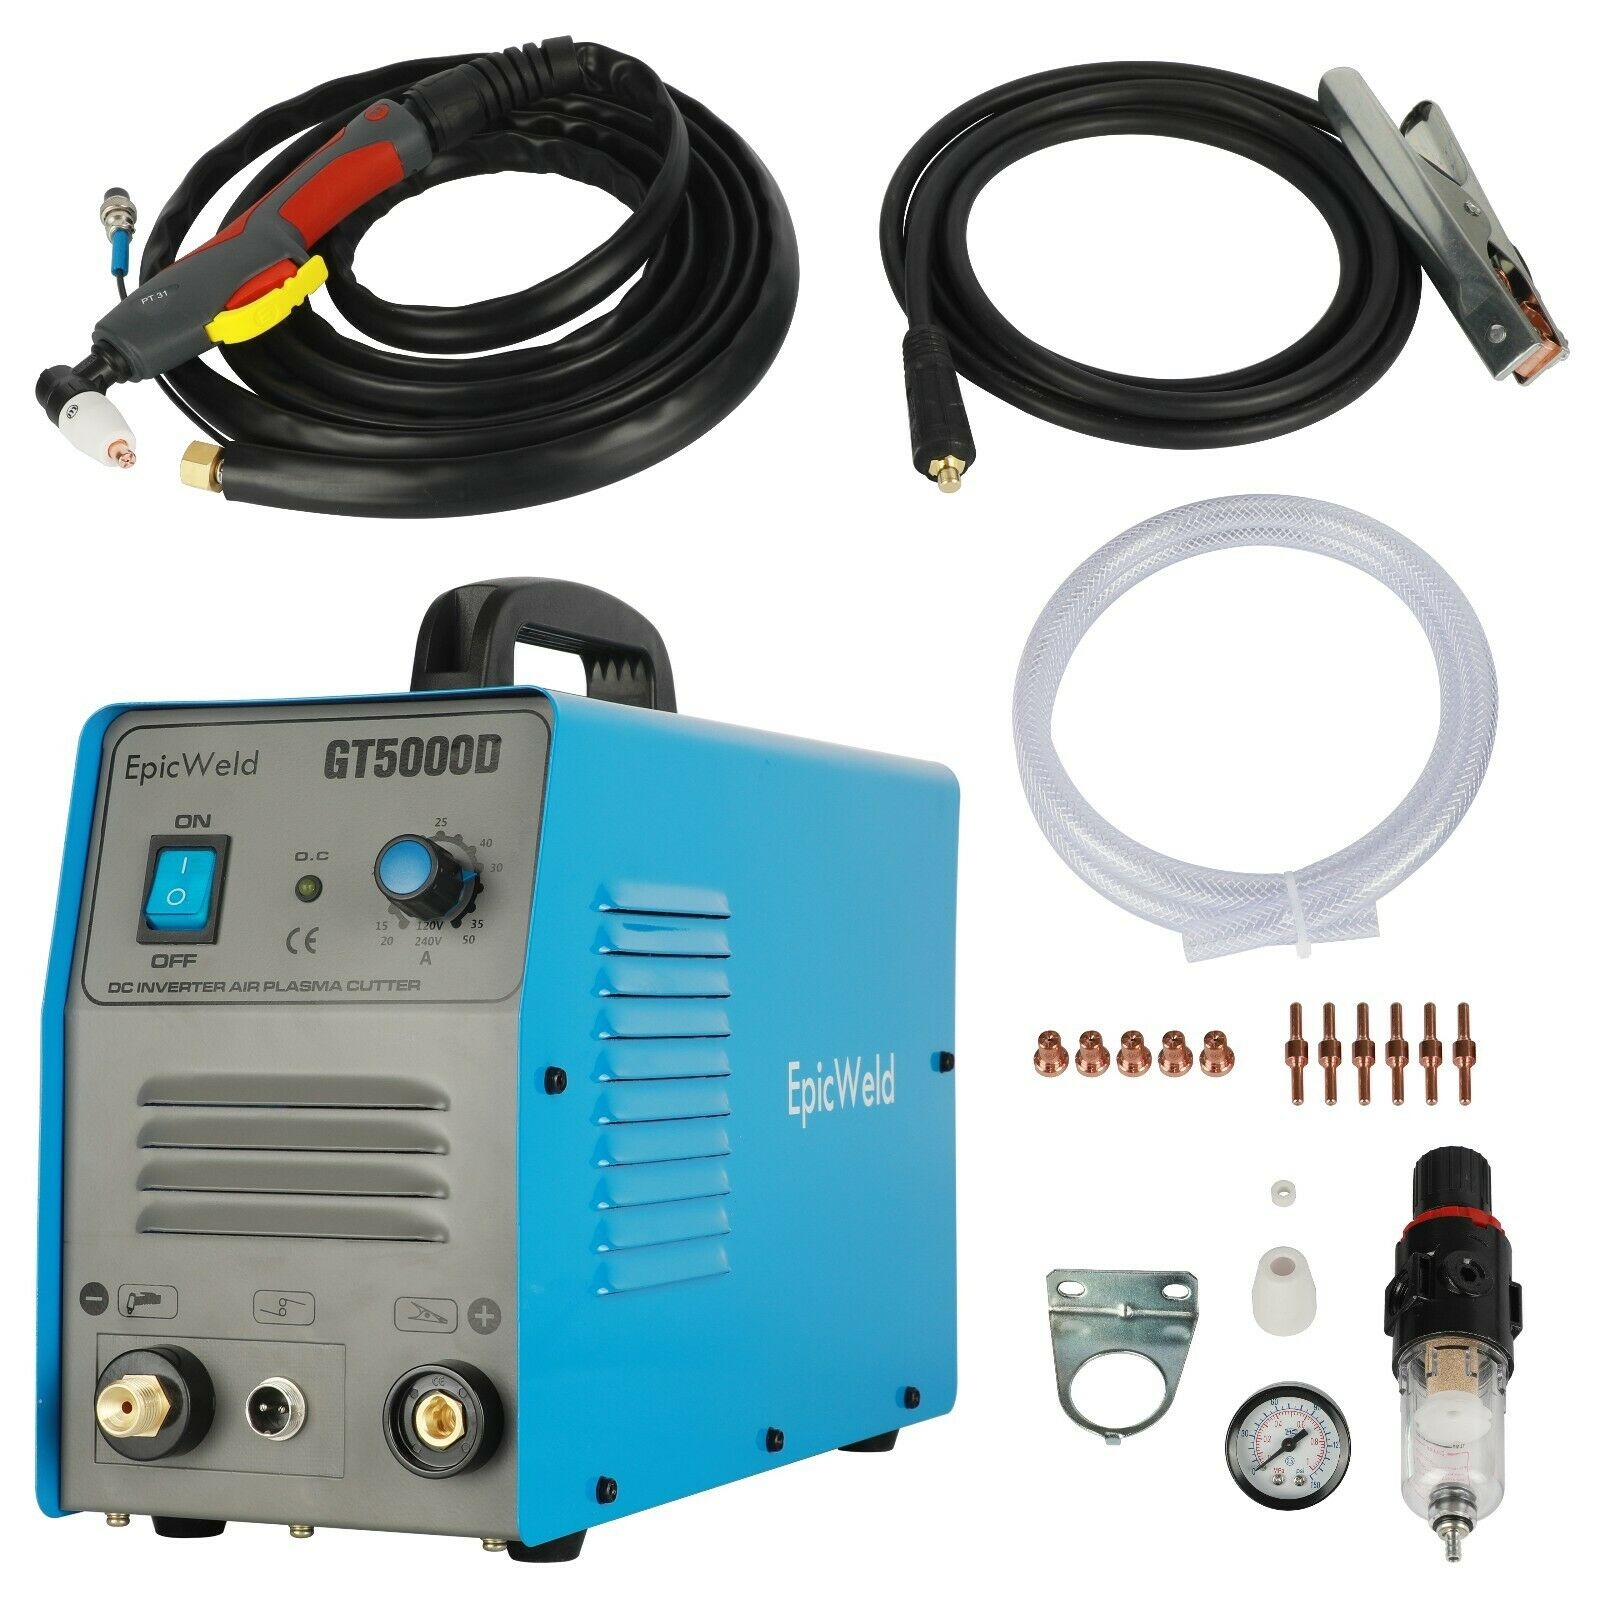 Epicweld 50 Amp Plasma Cutter Works On 110 Or 220 Volts 1